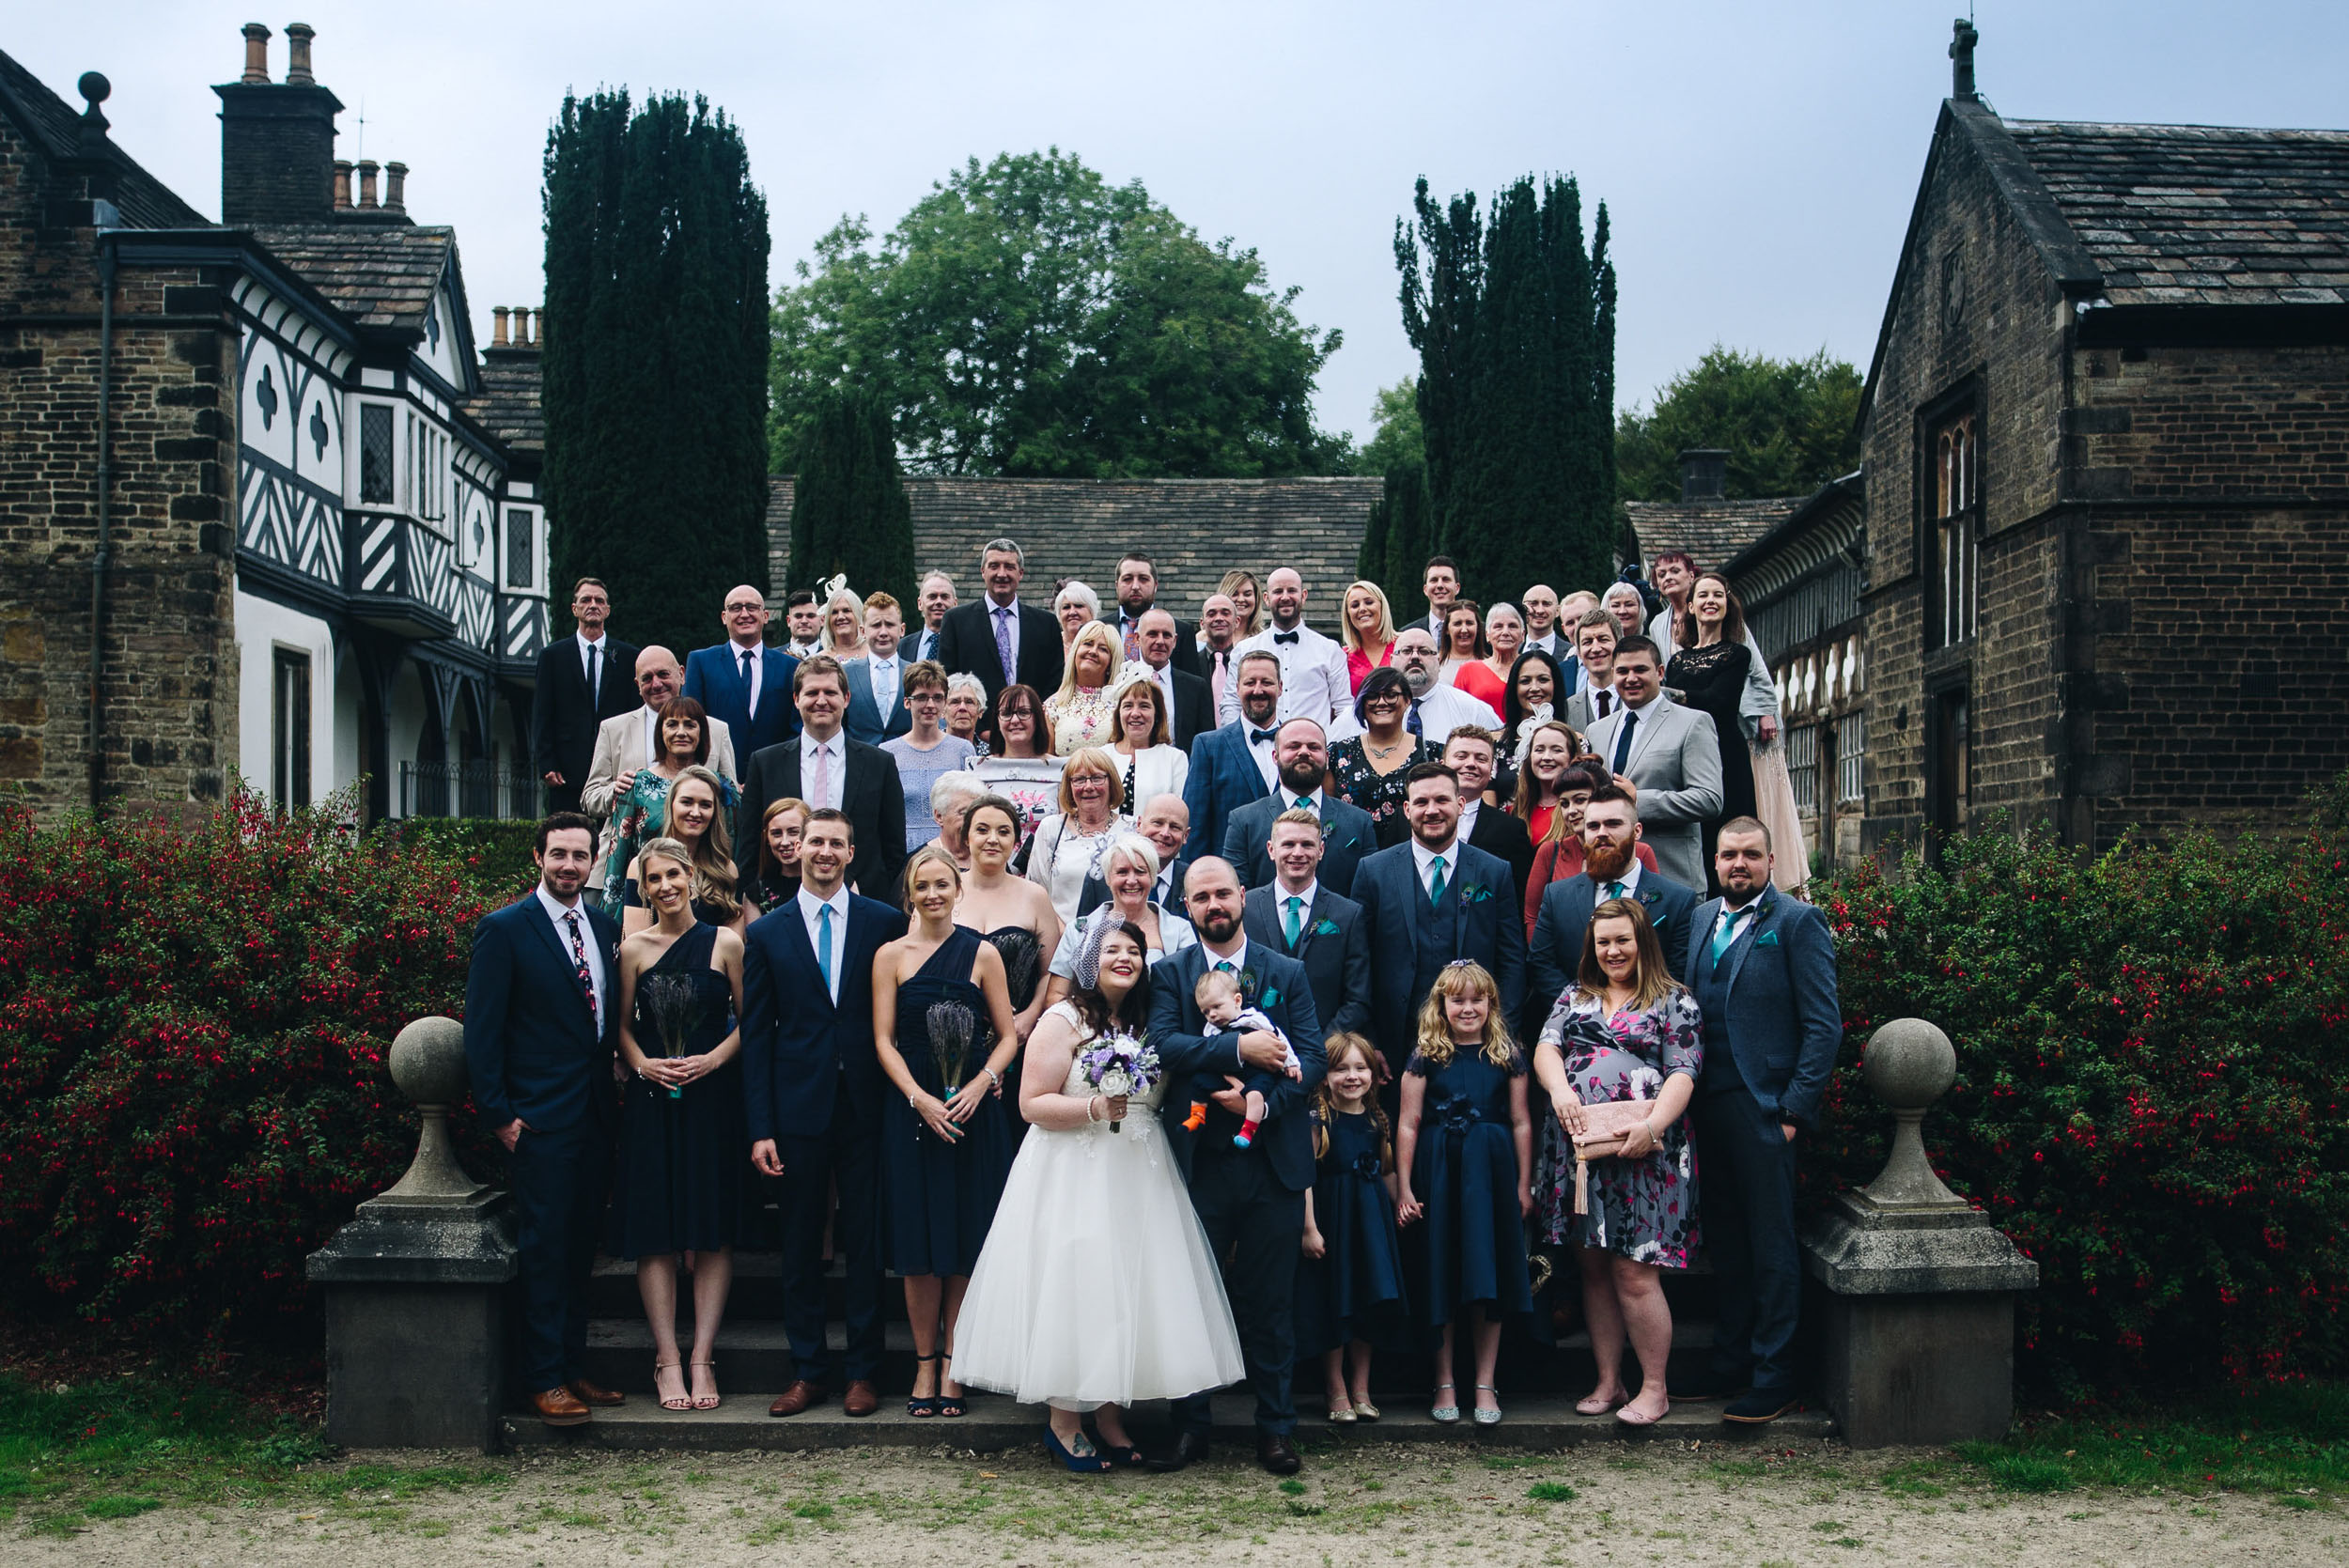 Smithills-hall-wedding-manchester-the-barlow-edgworth-hadfield-35.jpg